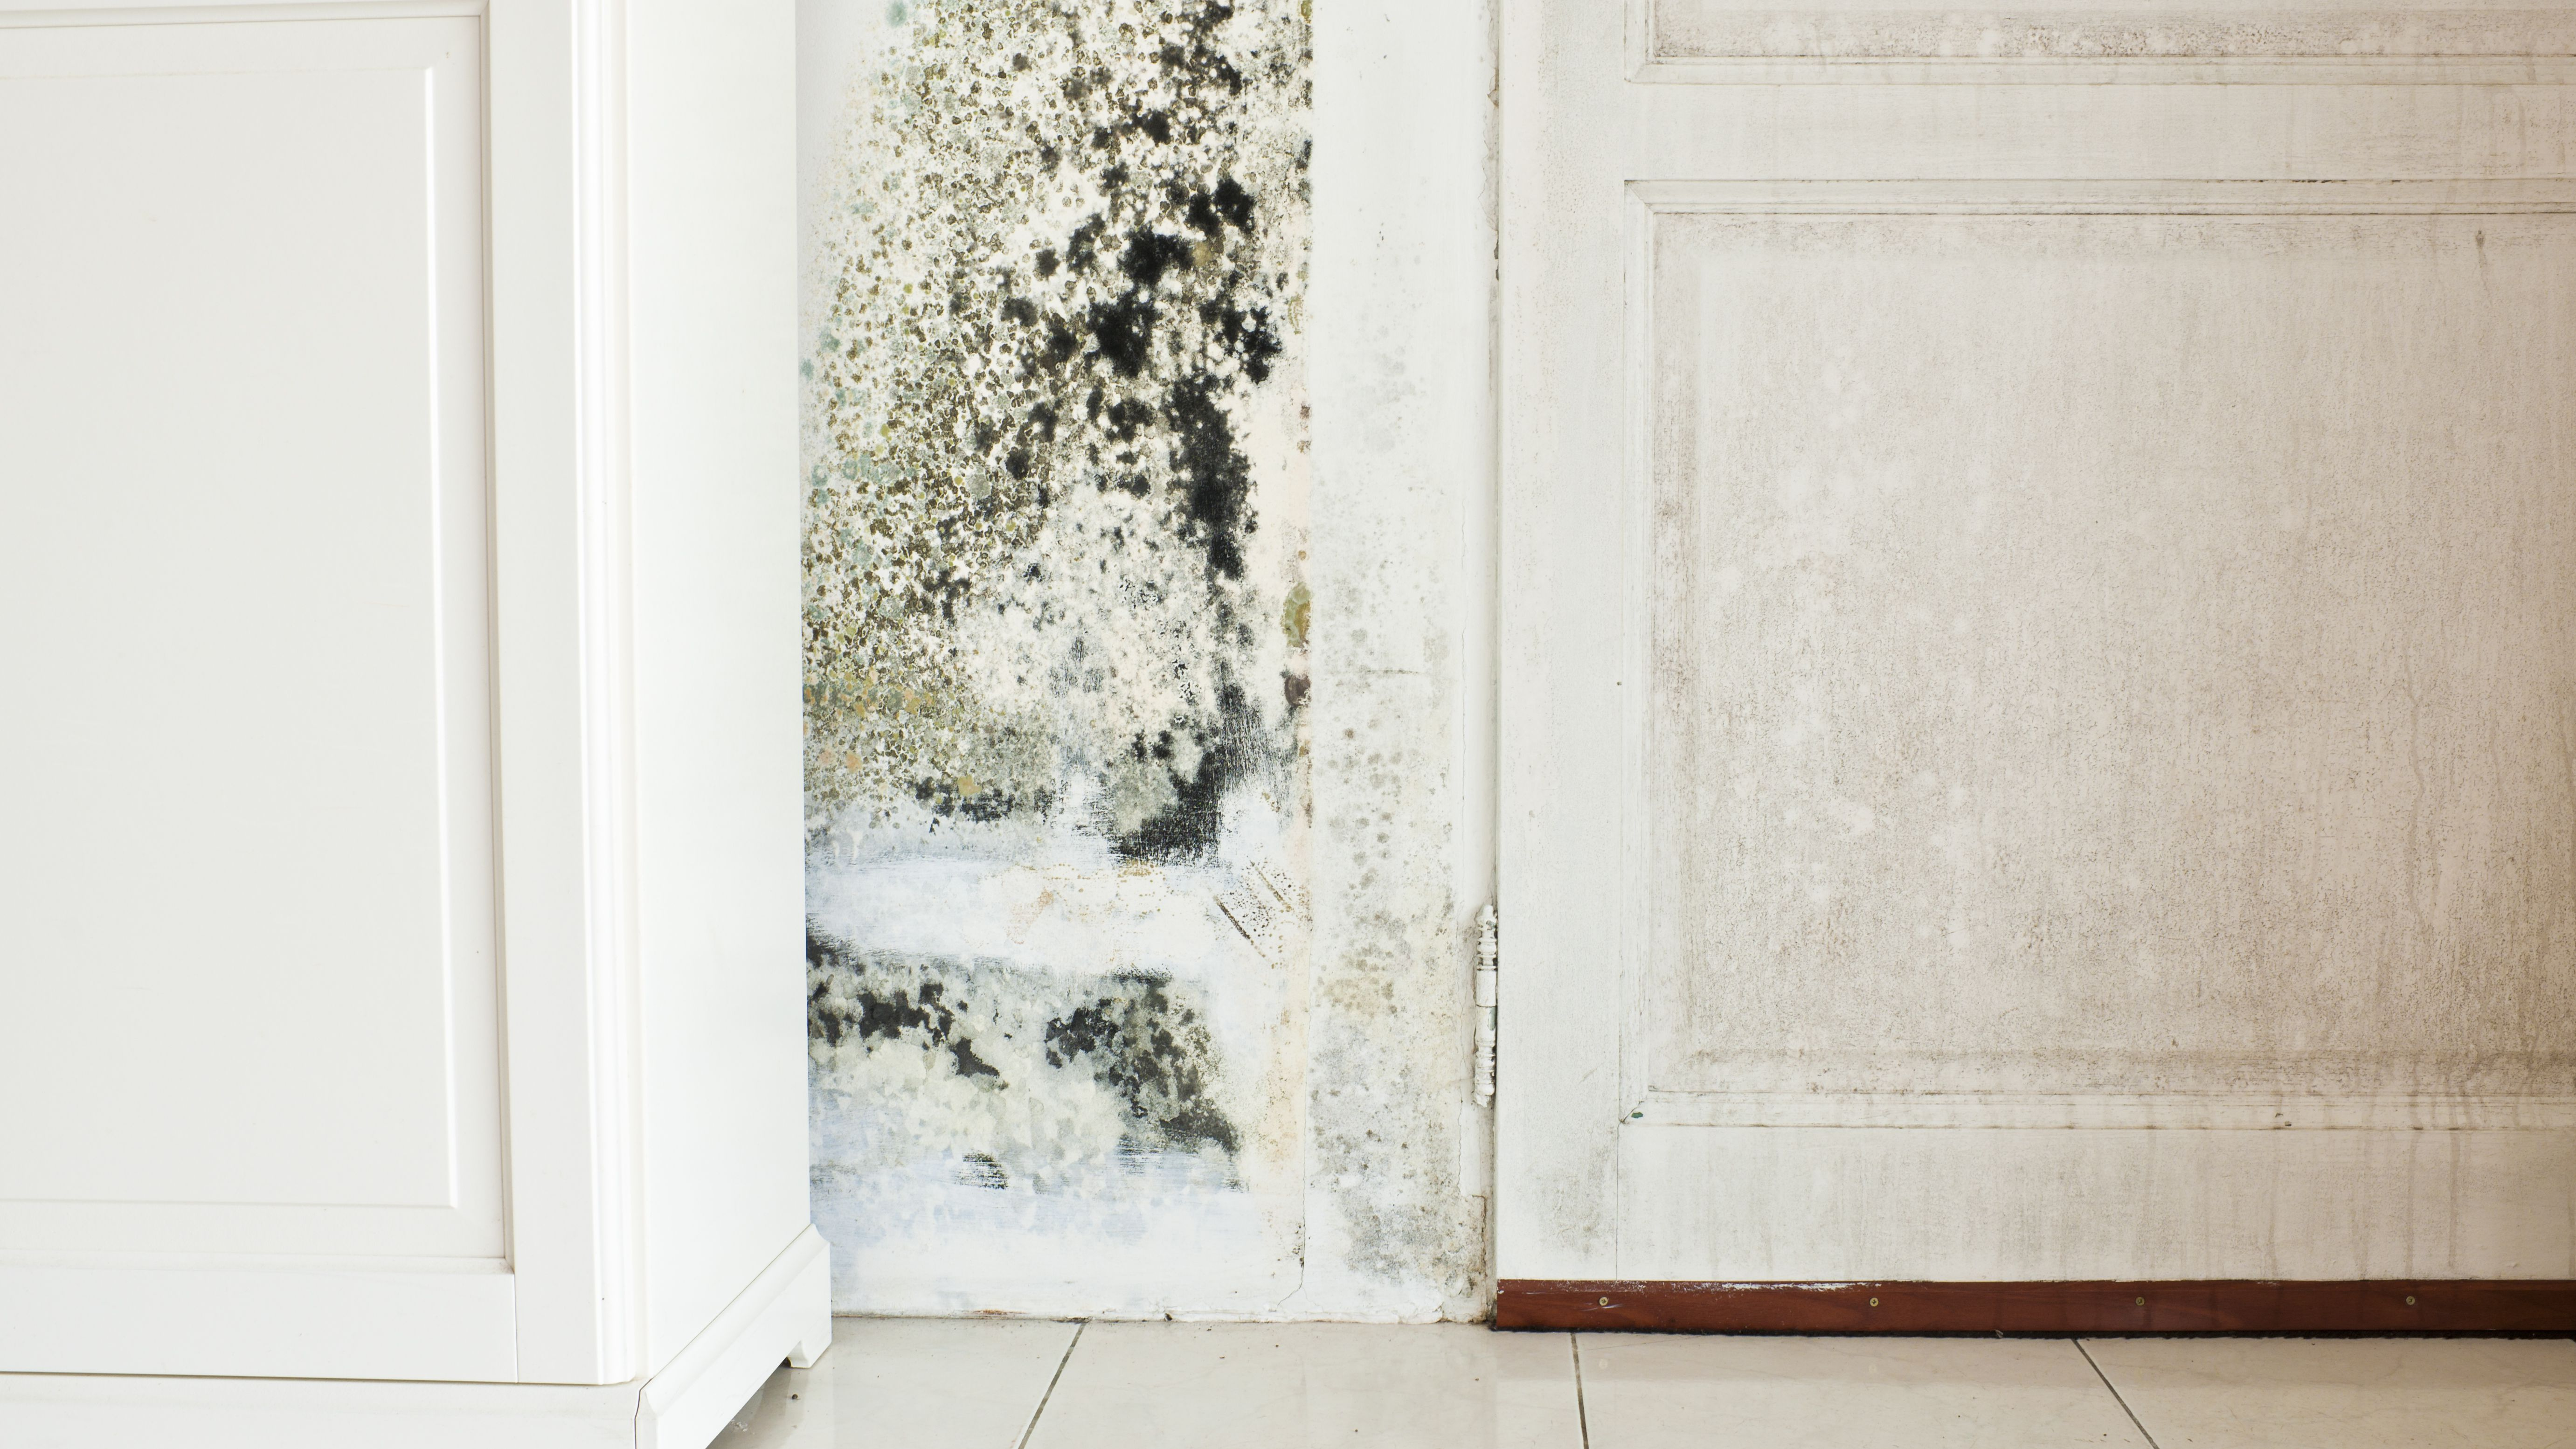 how to avoid dangerous mold growth in the laundry room